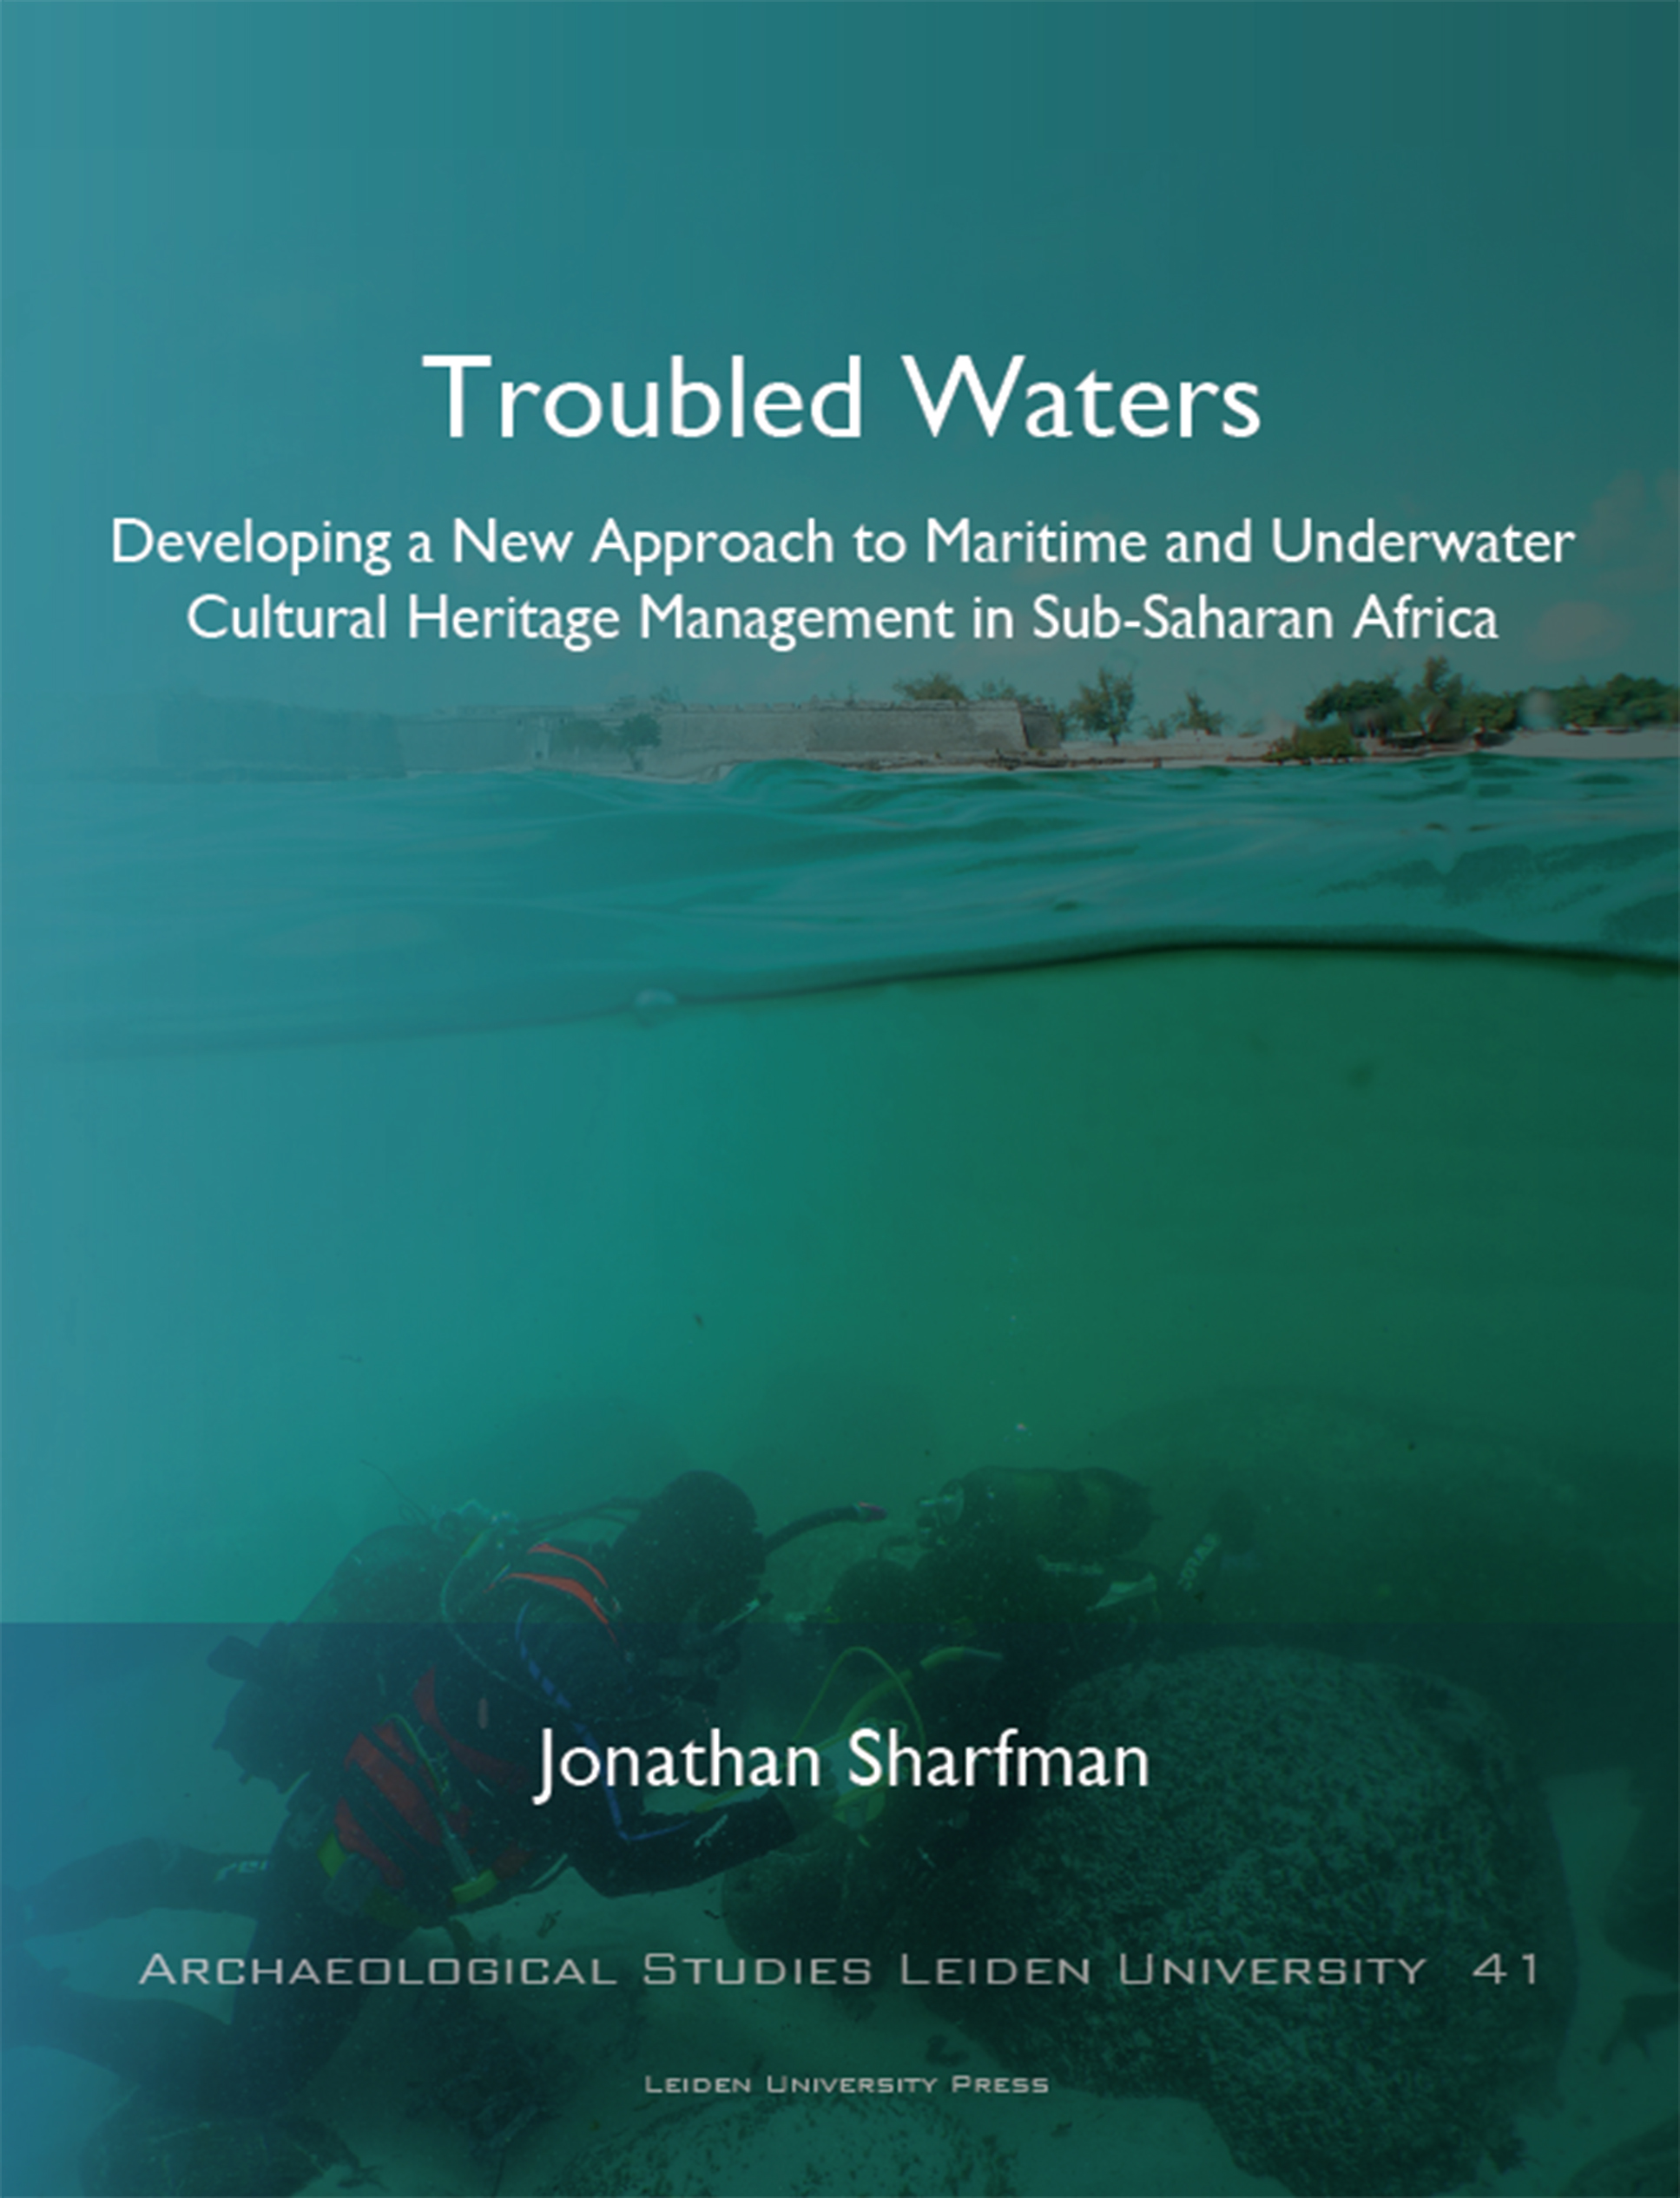 Troubled Waters: Developing a New Approach to Maritime and Underwater Cultural Heritage Management in Sub-Saharan Africa